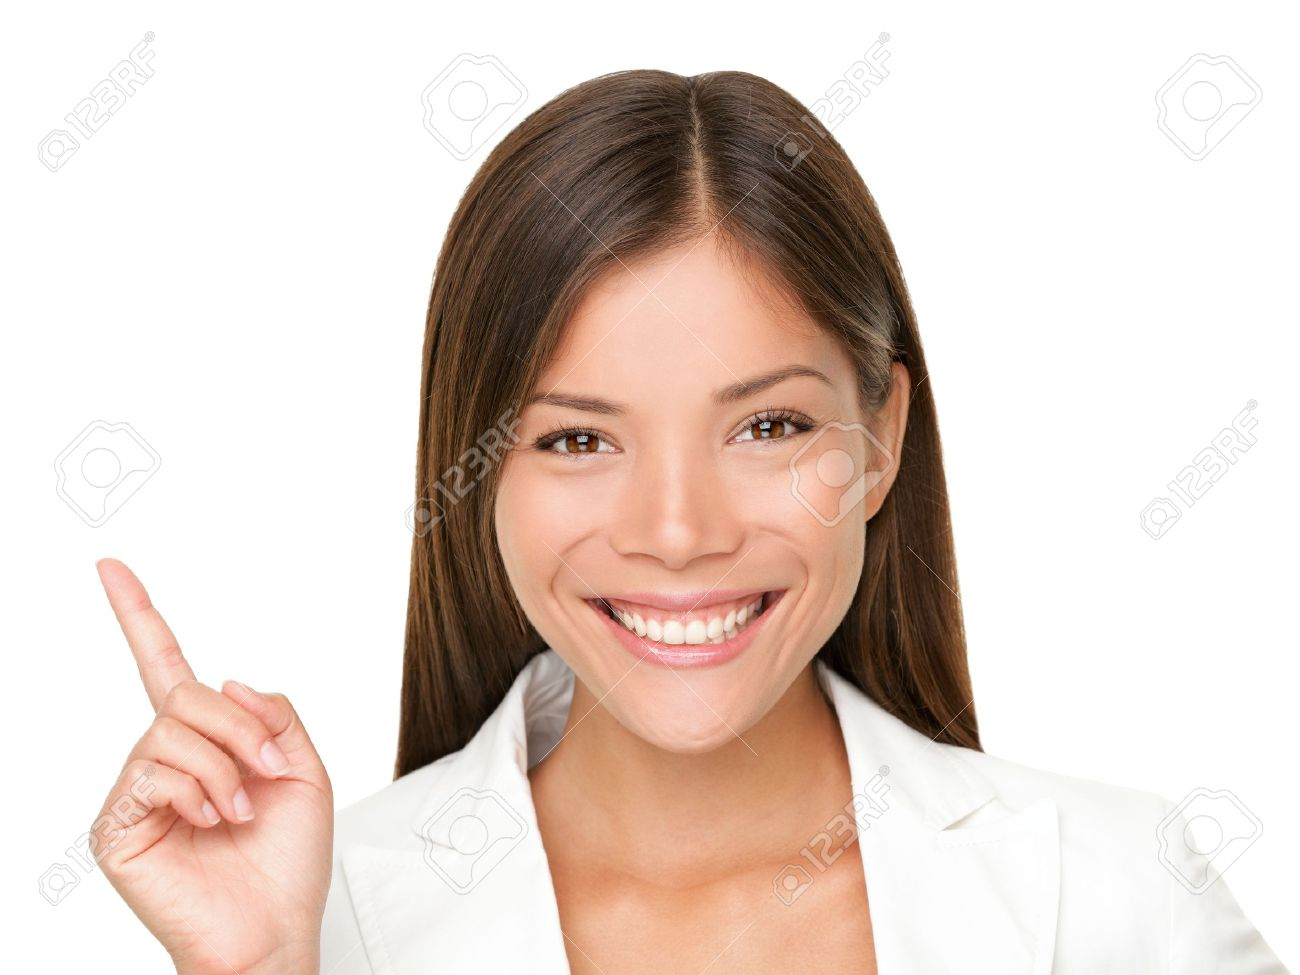 Woman smiling pointing up showing copy space. Closeup of beautiful young professional businesswoman isolated on white background. Stock Photo - 9097605